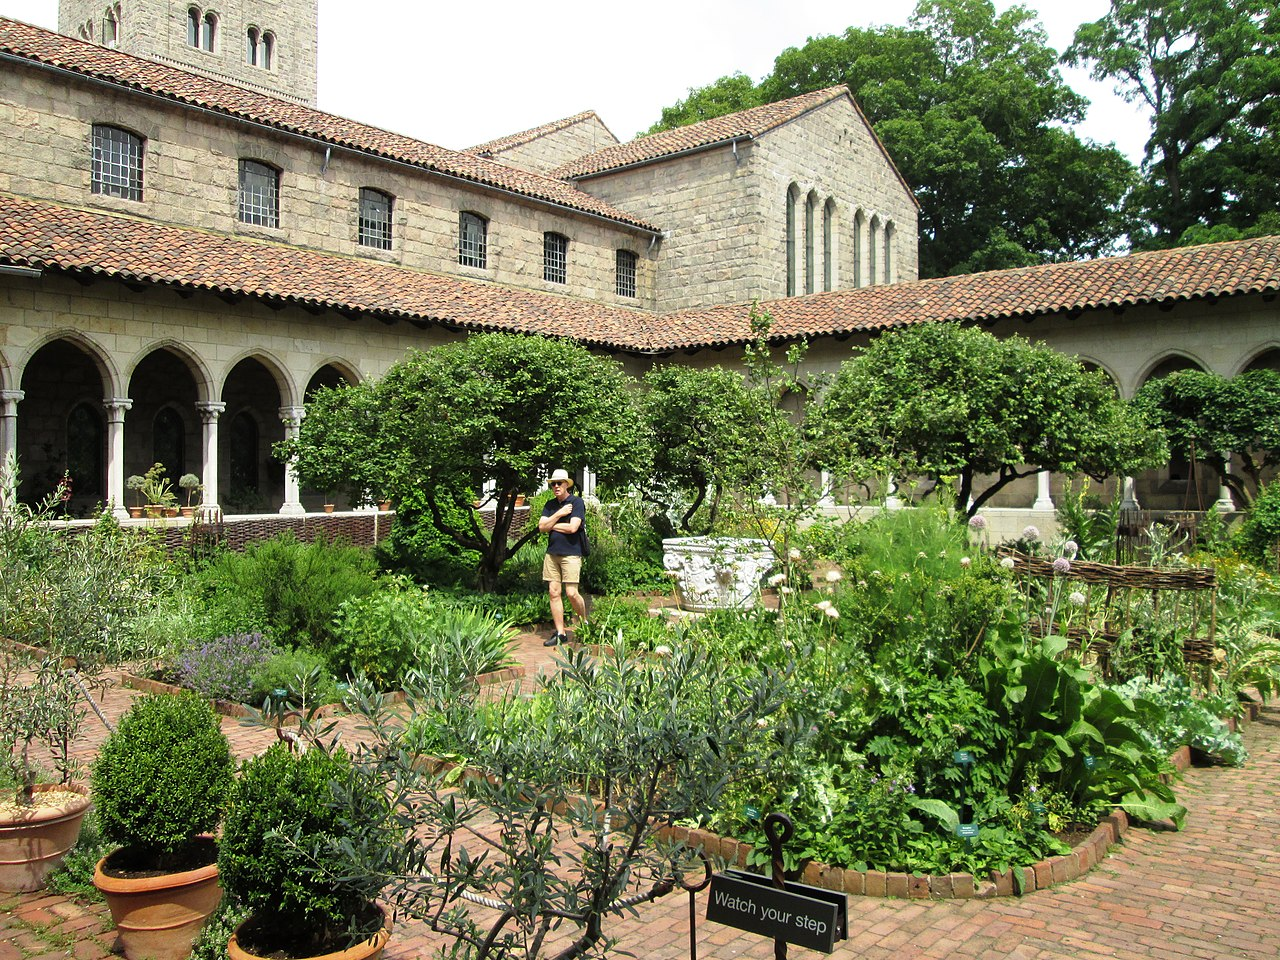 The Cloisters Manhattan by Beyond My Ken Wikimedia Commons